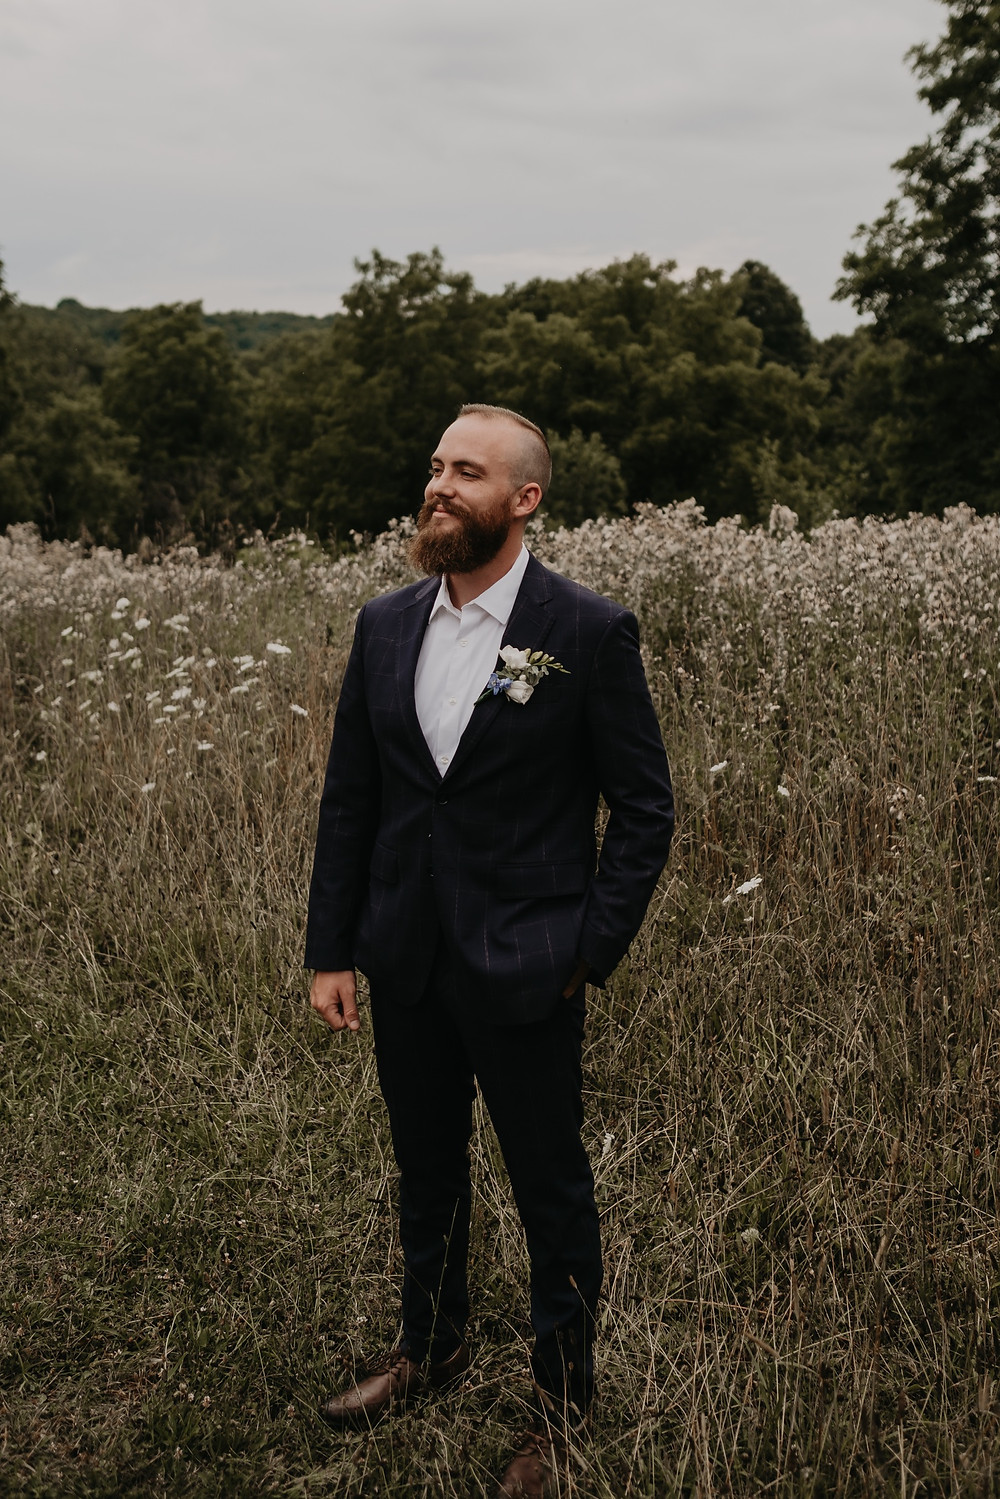 Groom smiling on wedding day in open field in Metro Detroit. Photographed by Nicole Leanne Photography.